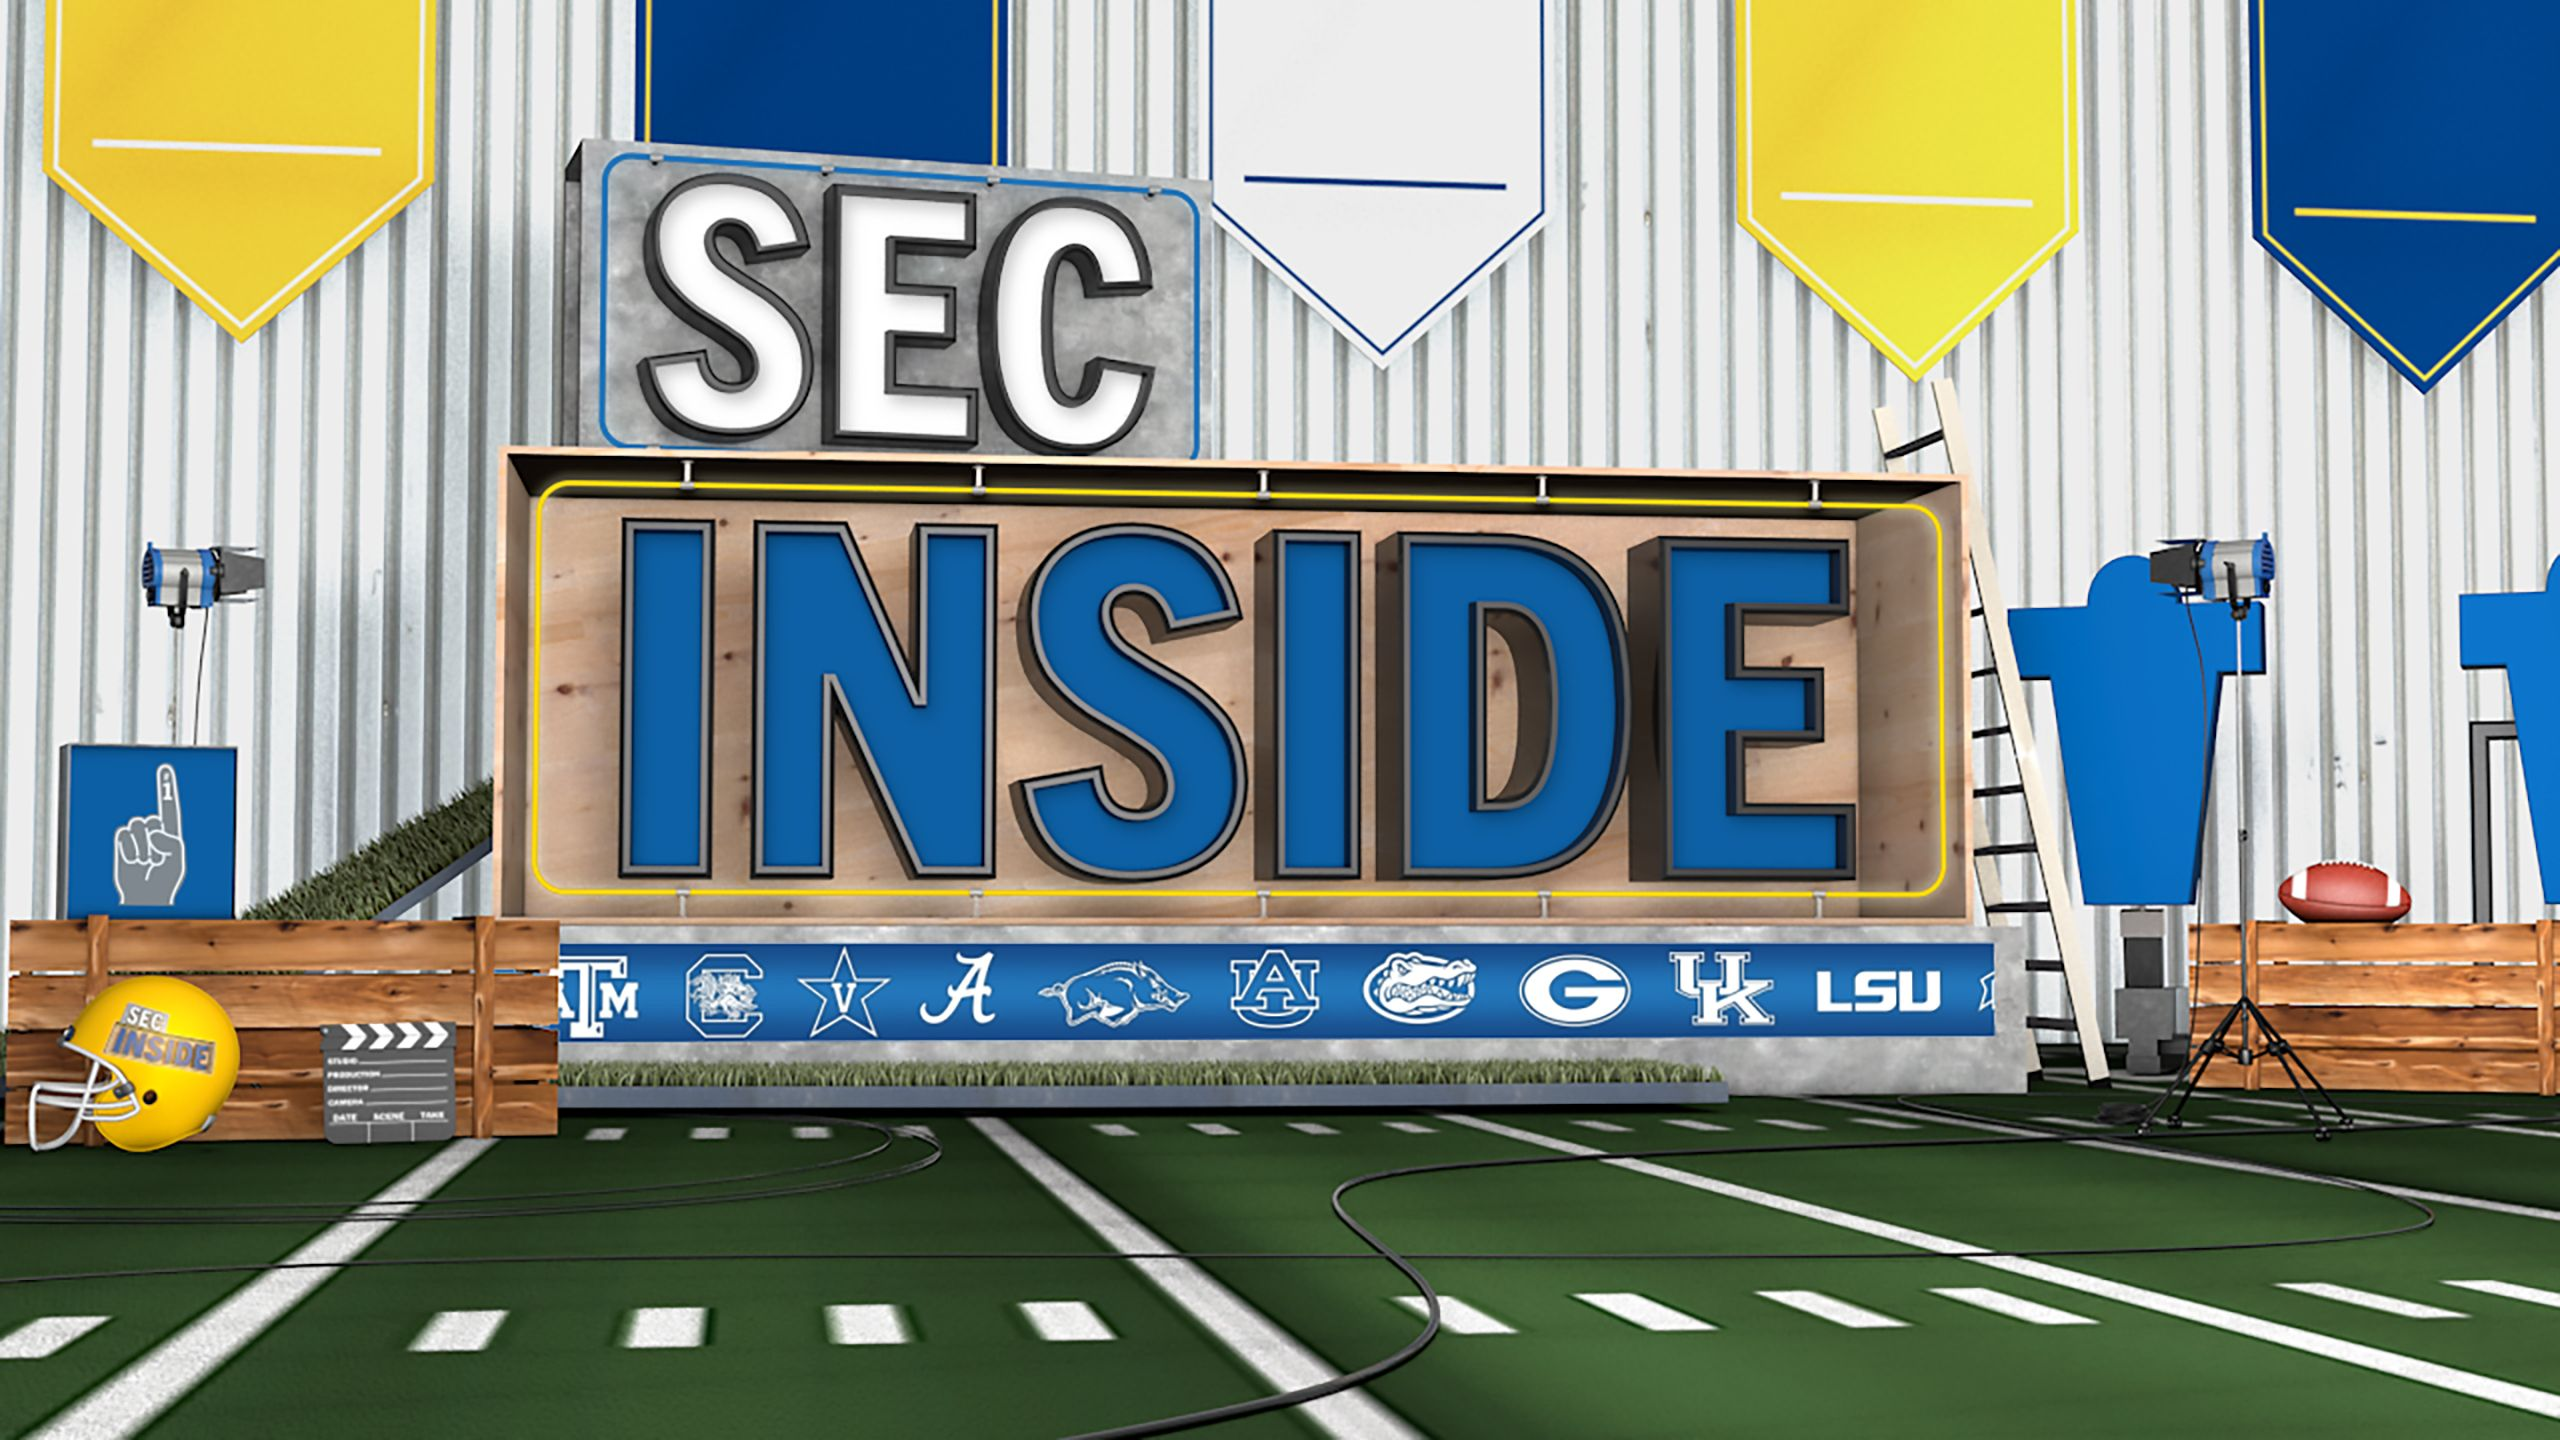 SEC Inside: Missouri vs. Georgia